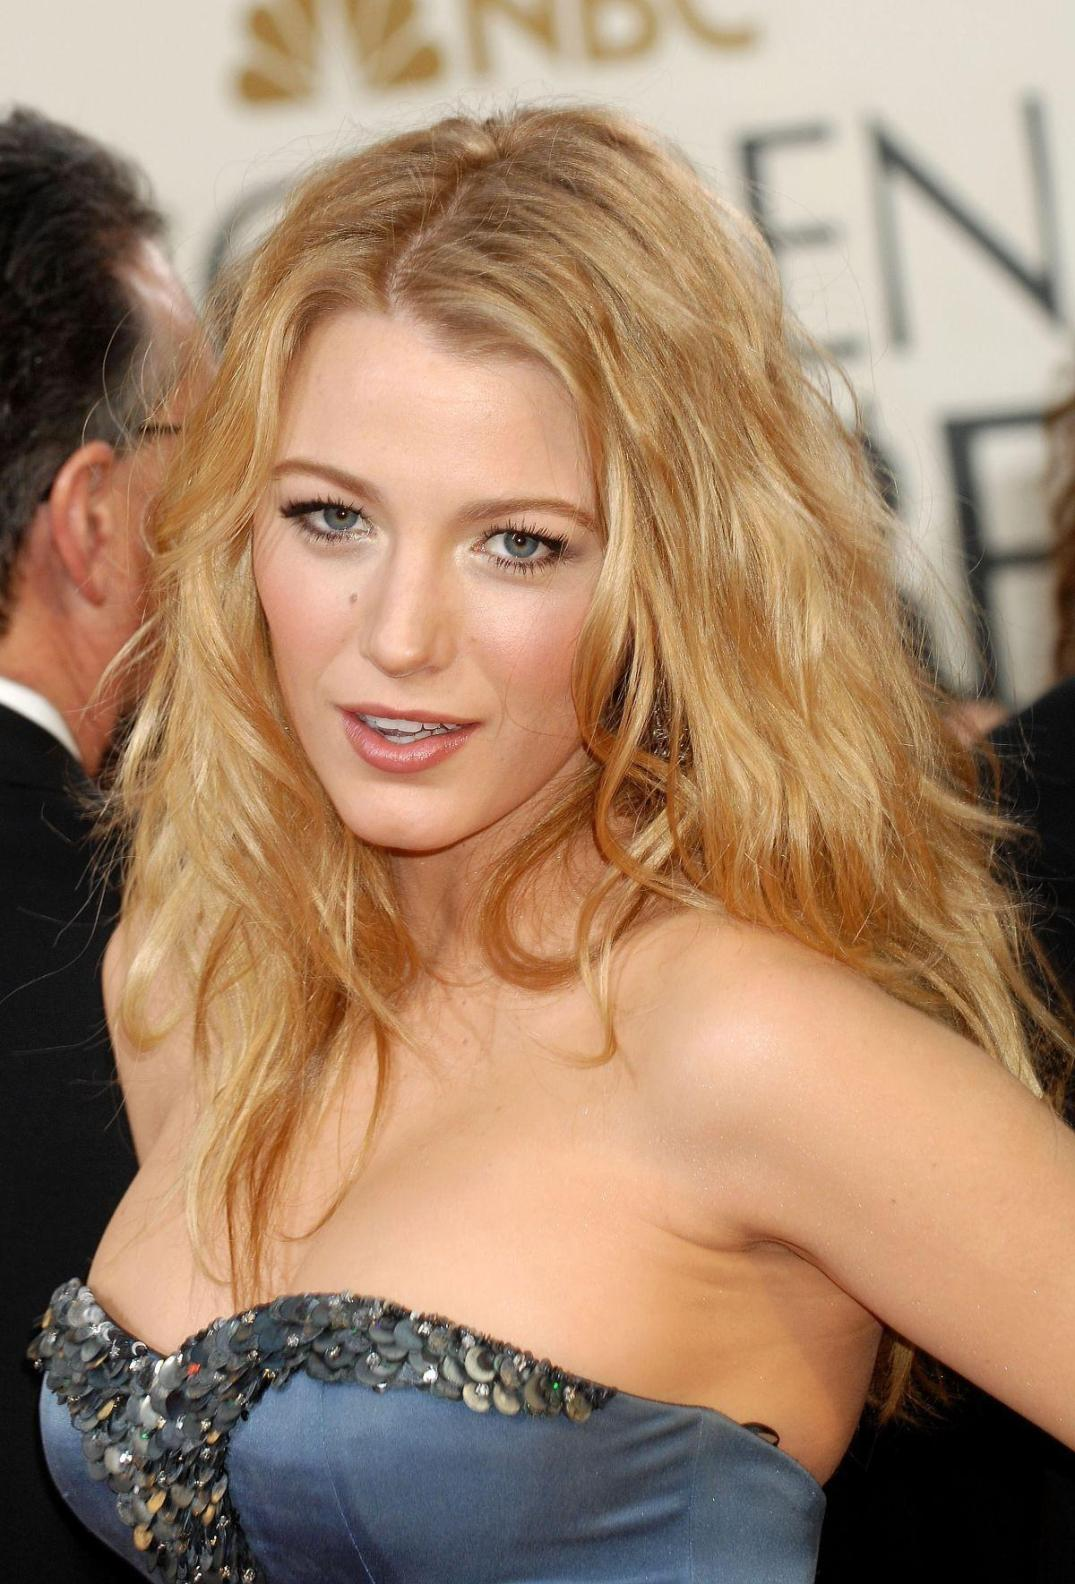 Blake Lively Is the Face of Gucci's Latest Fragrance ...